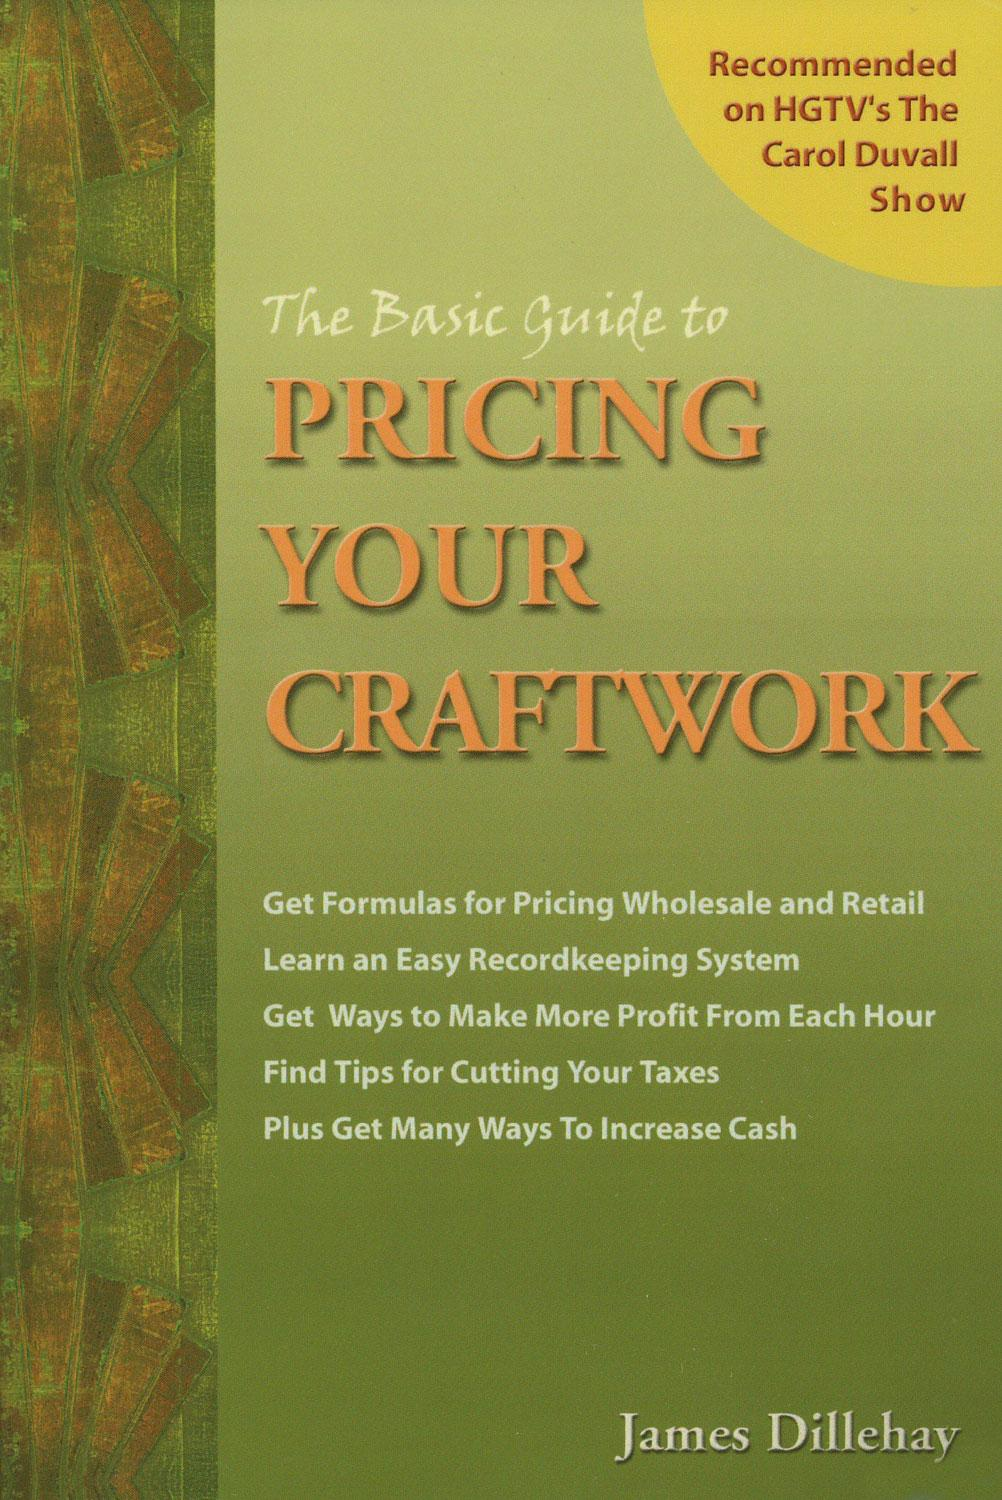 Pricing Your Craftwork